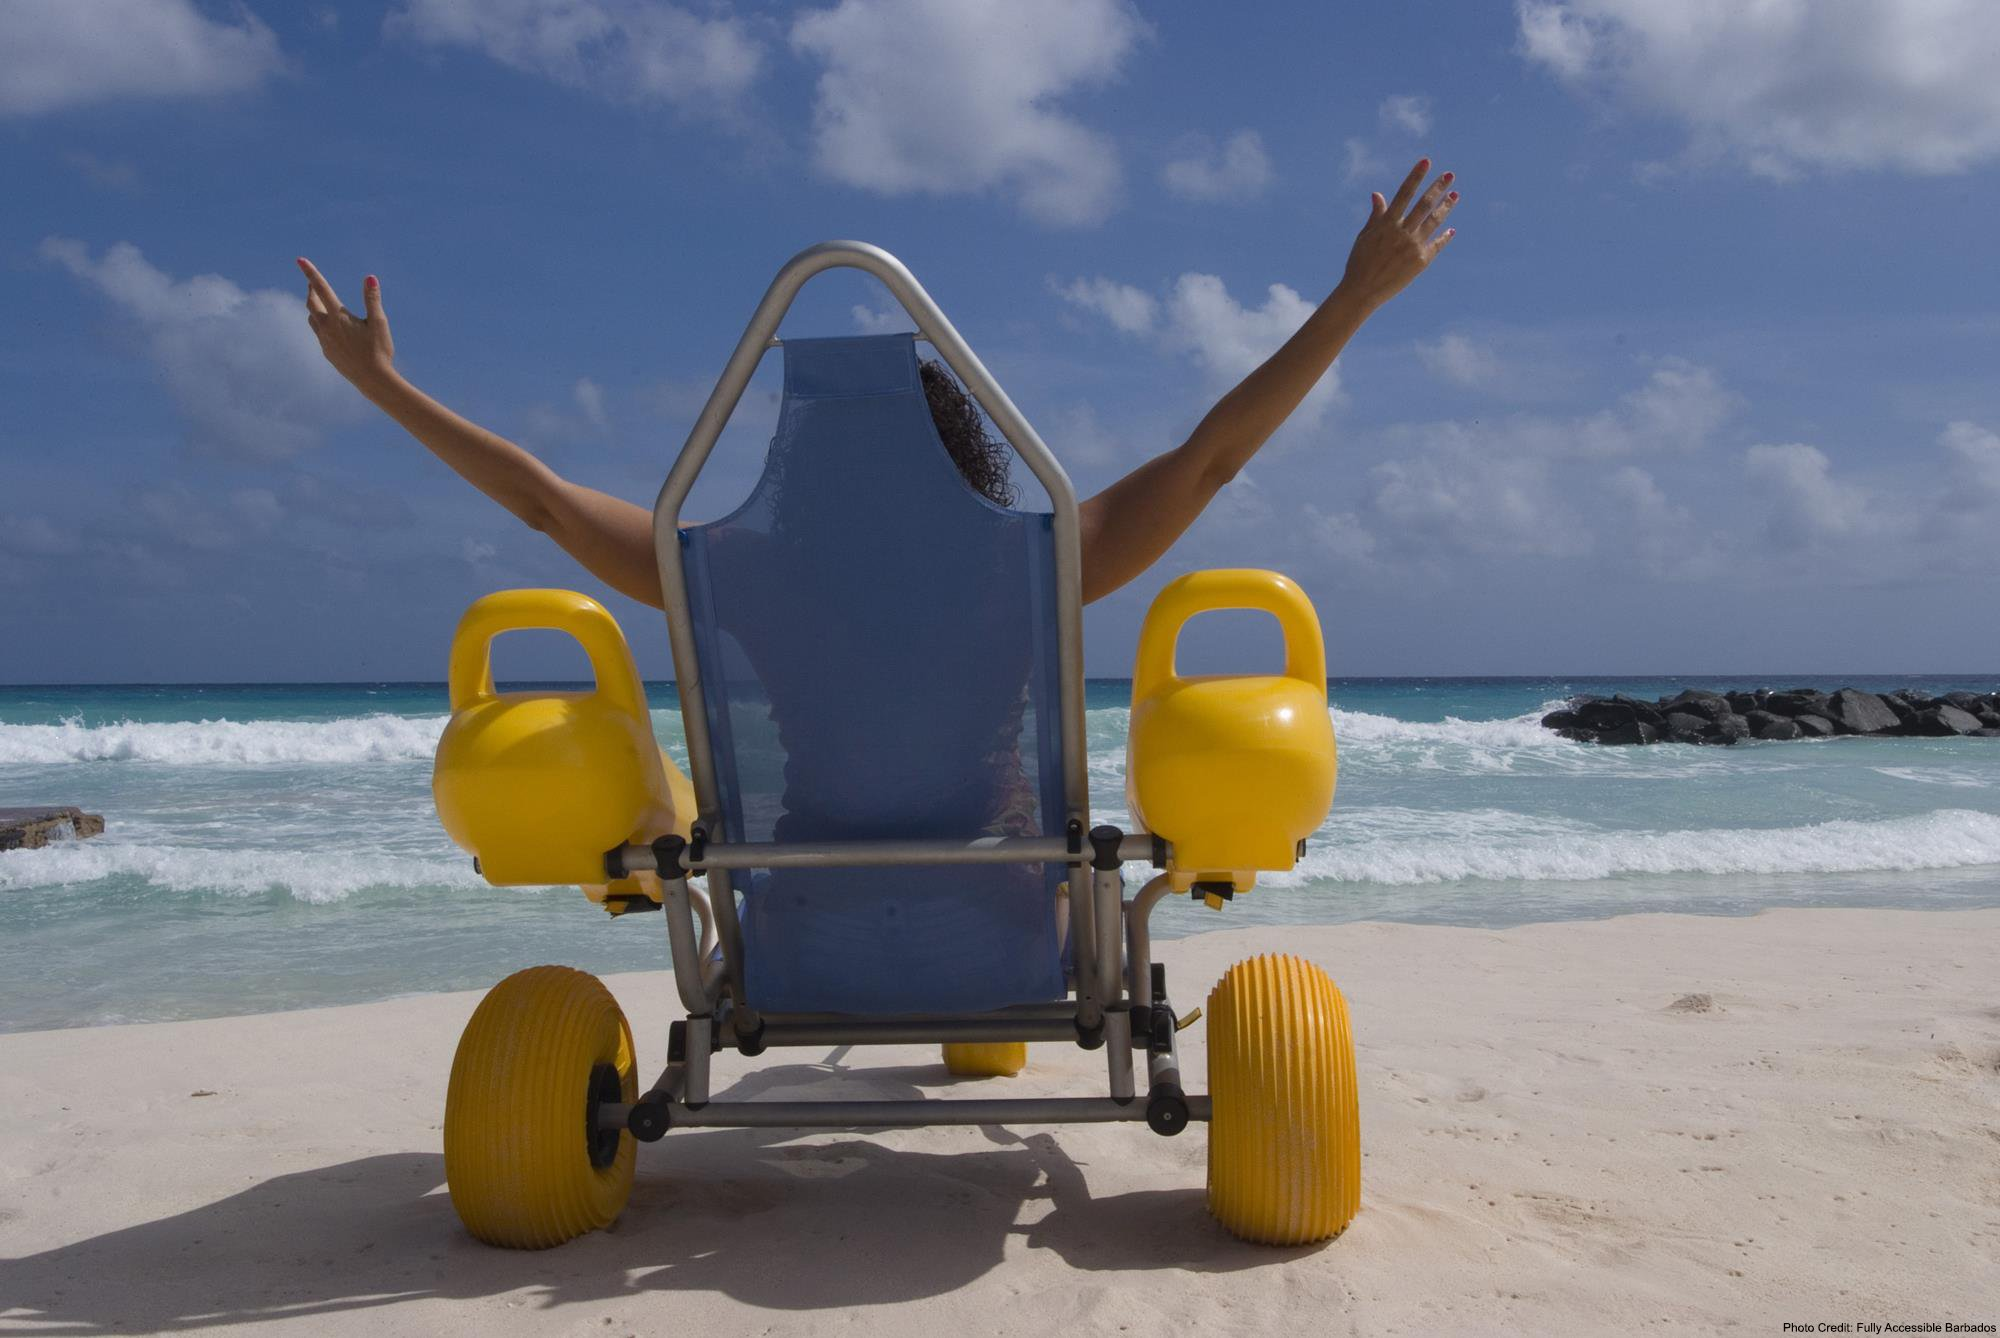 Lady in a beach wheelchair on the beach in Barbados with her hands out stretched